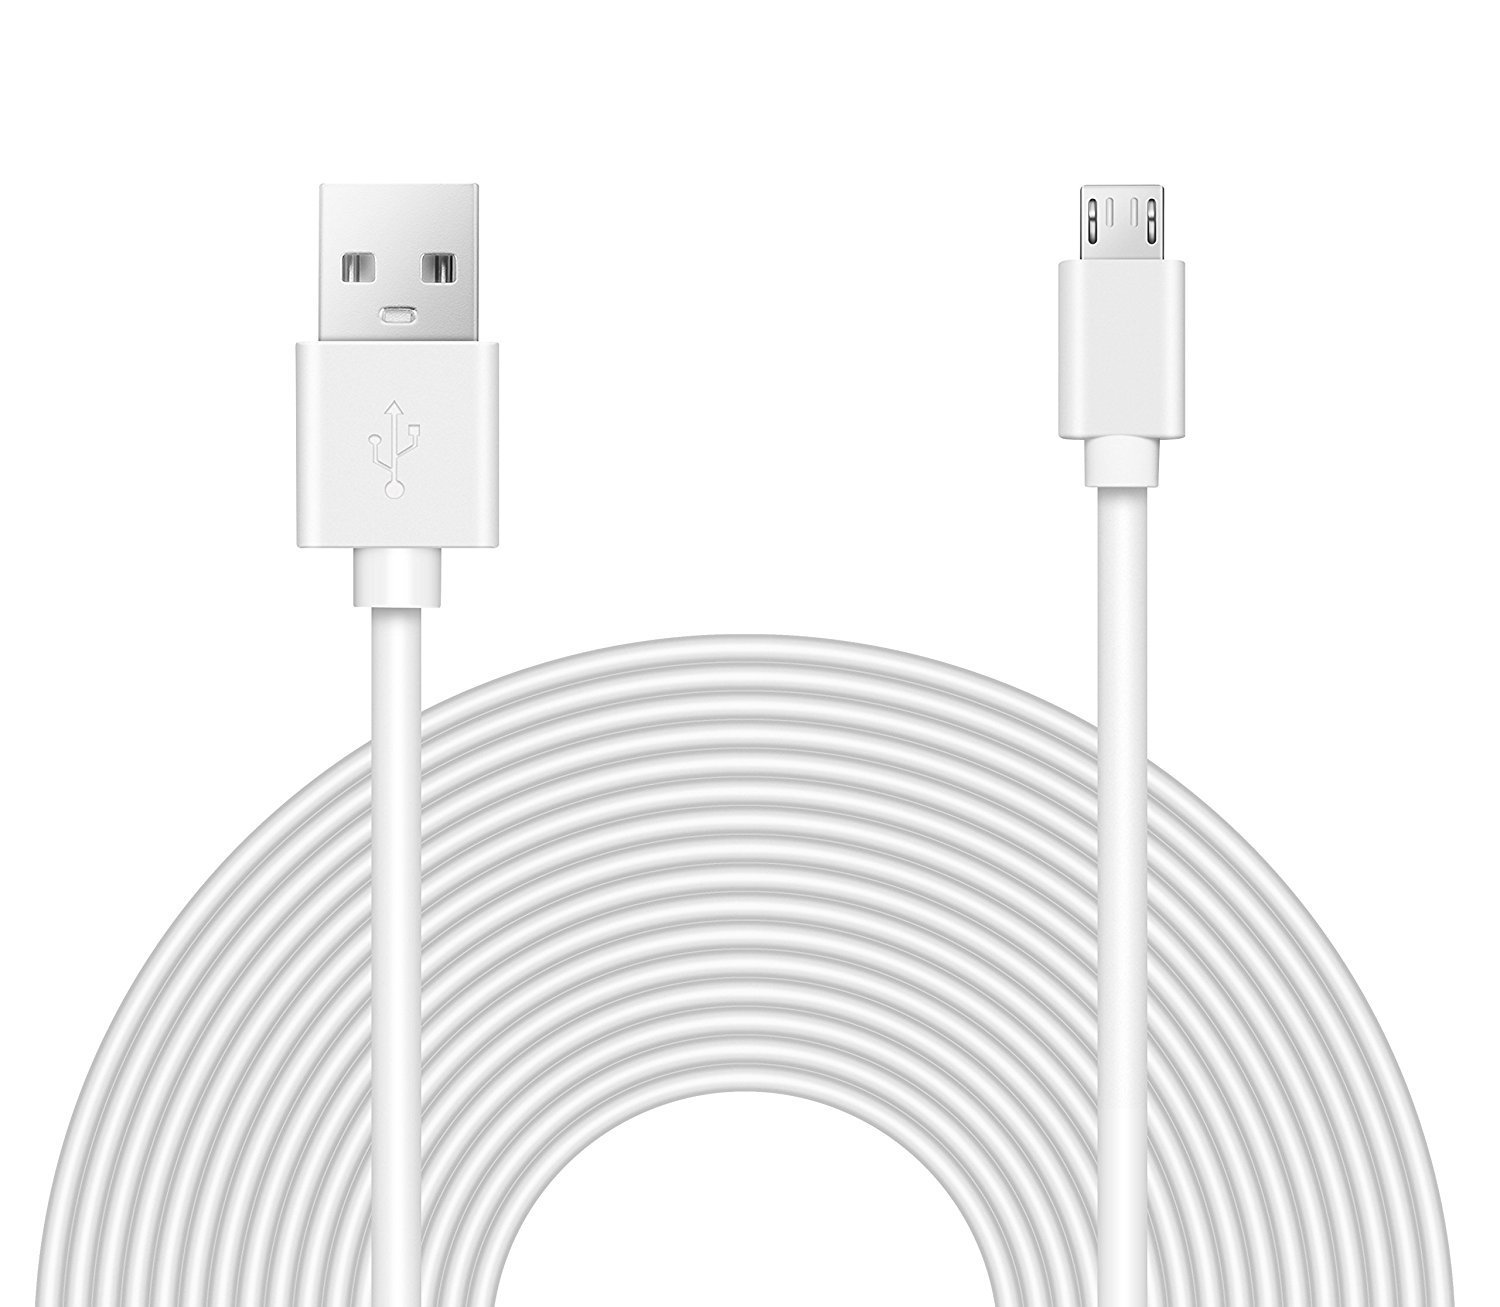 OMNIHIL Replacement (32FT) 2.0 High Speed USB Cable for D-Link Wireless Dual Band N-900 Mbps USB Wi-Fi Network Adapter (DWA-162) - White